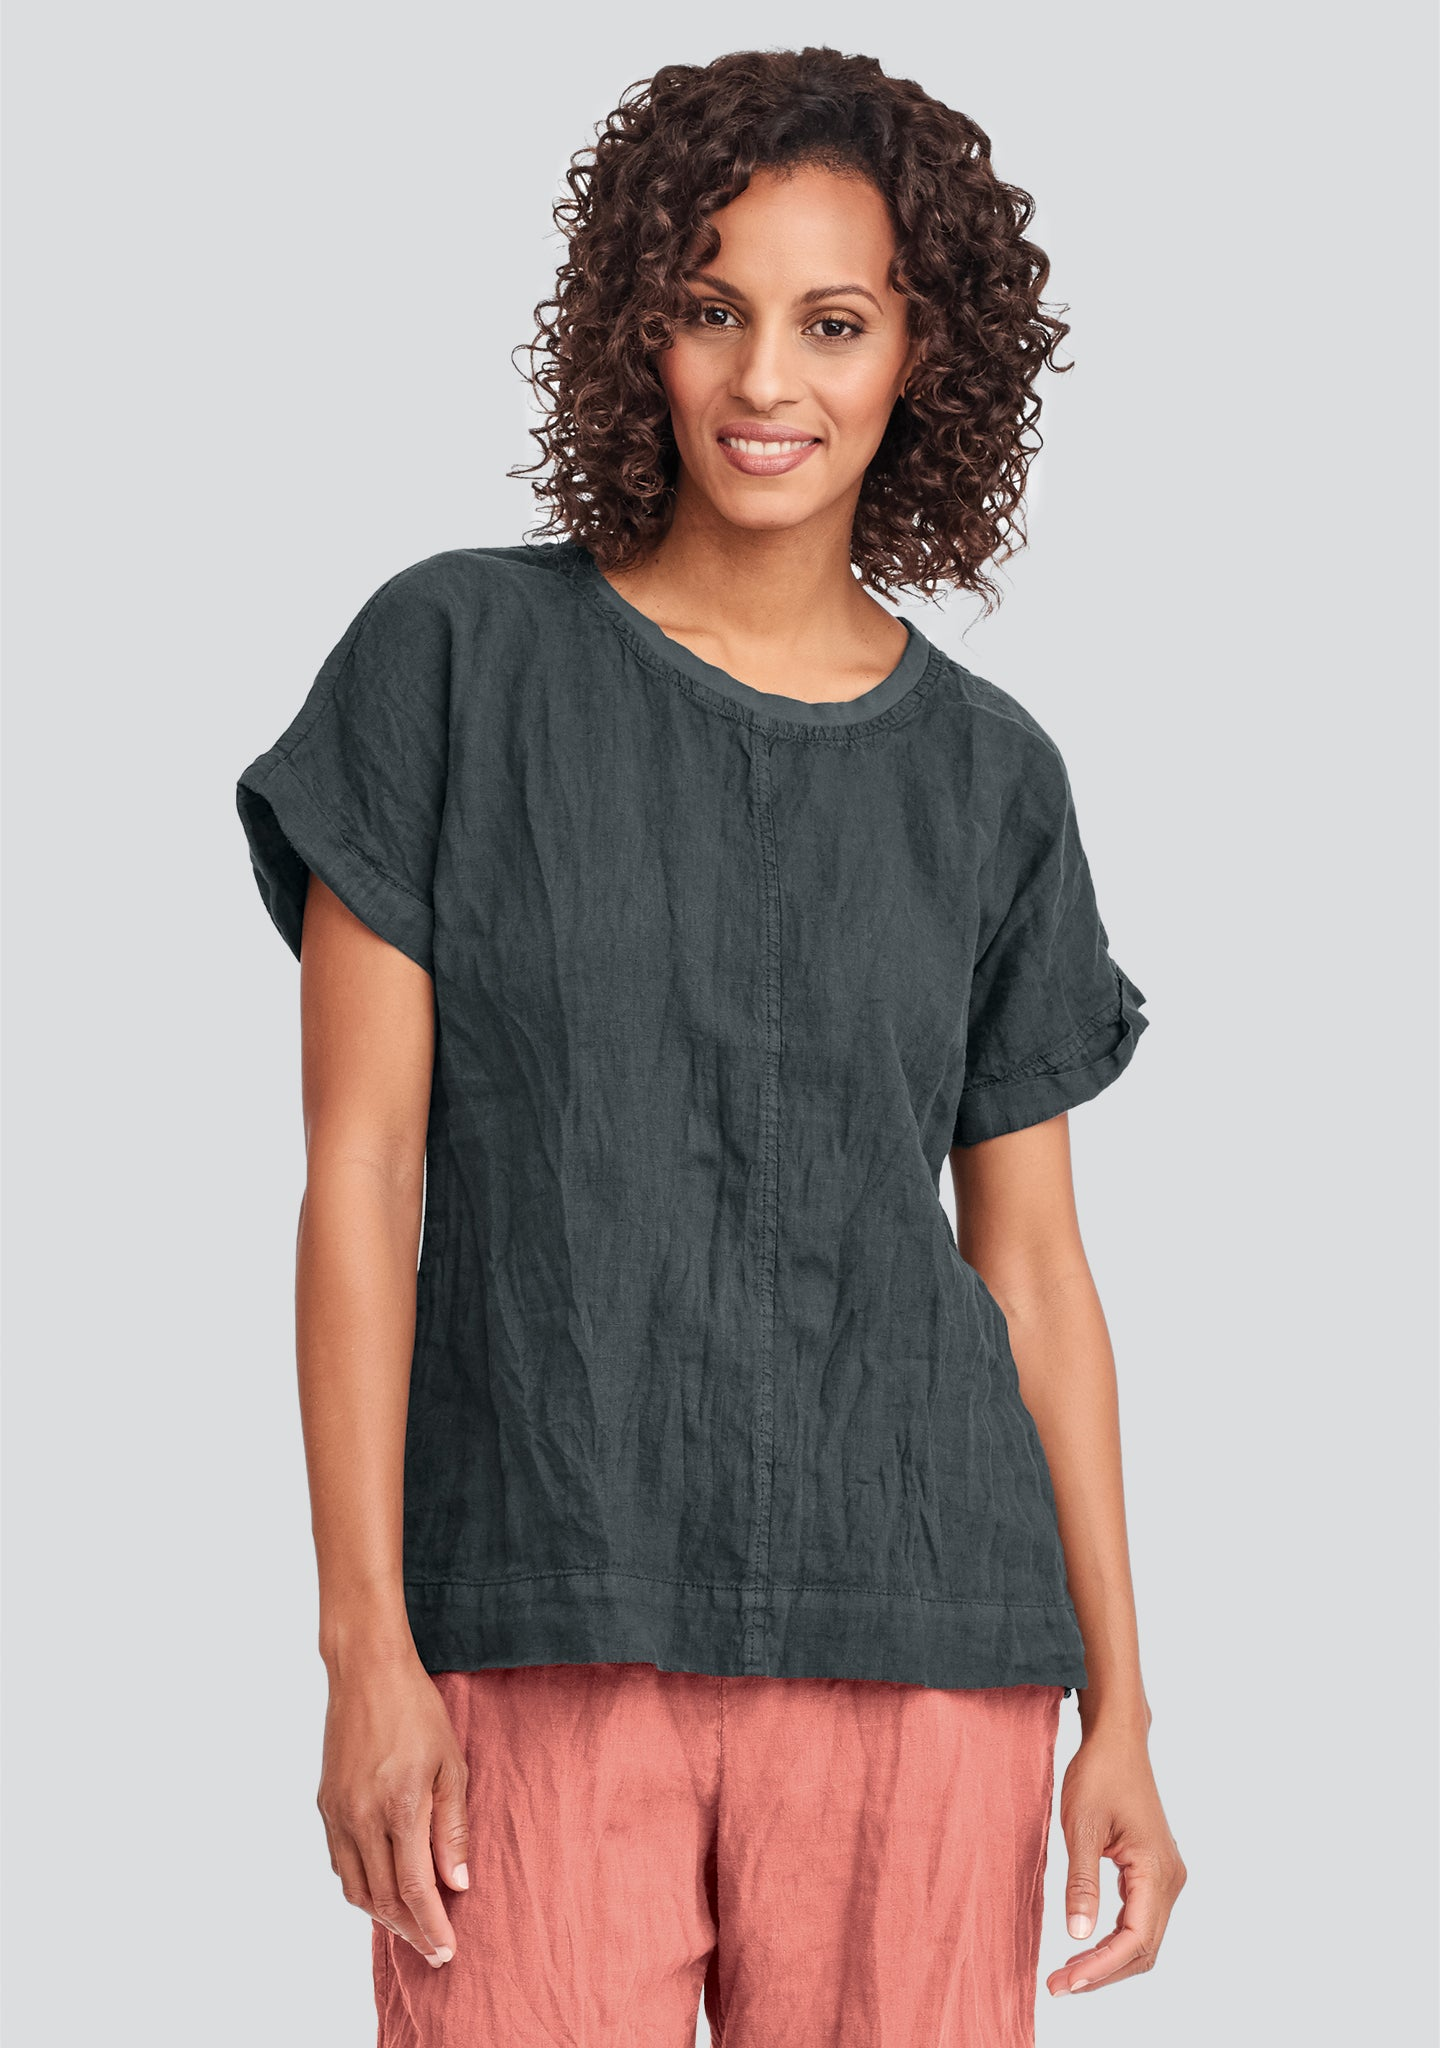 tee top linen t shirt black